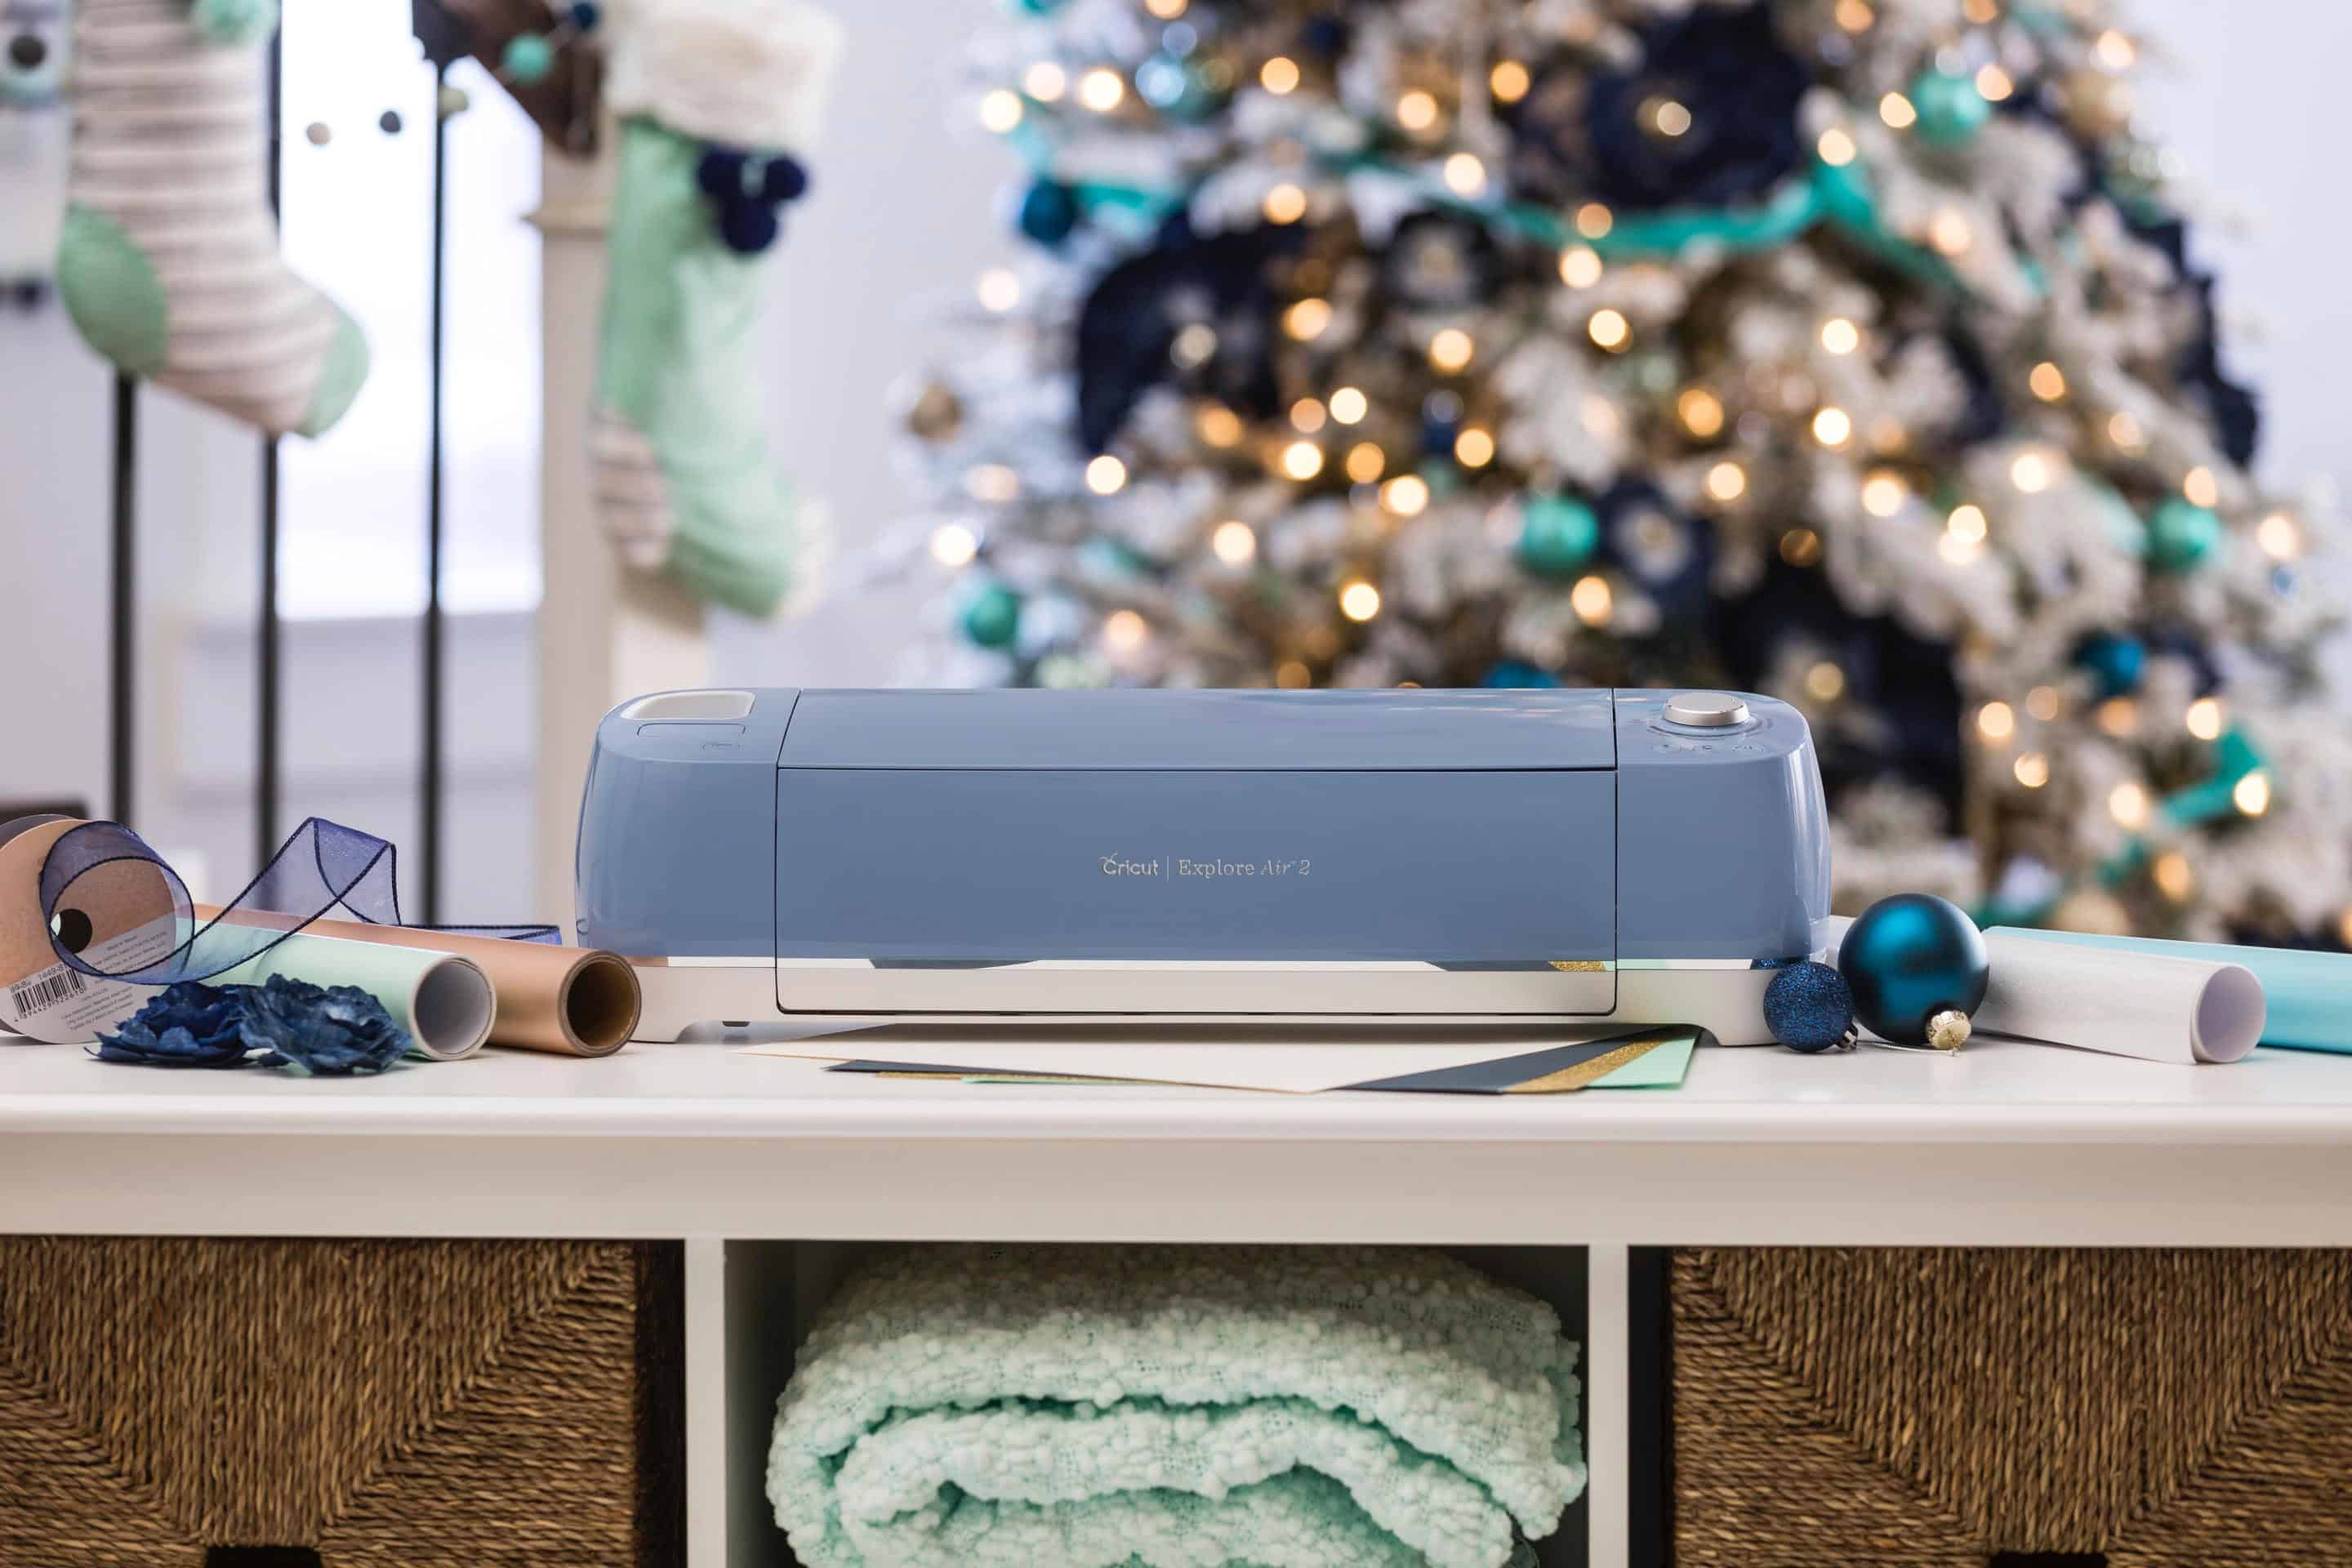 Check out the New Denim Cricut Explore Air 2 Bundle Only $199 at Walmart + 20 Ways It Can Make Your Life Easier & Save You Money #ad